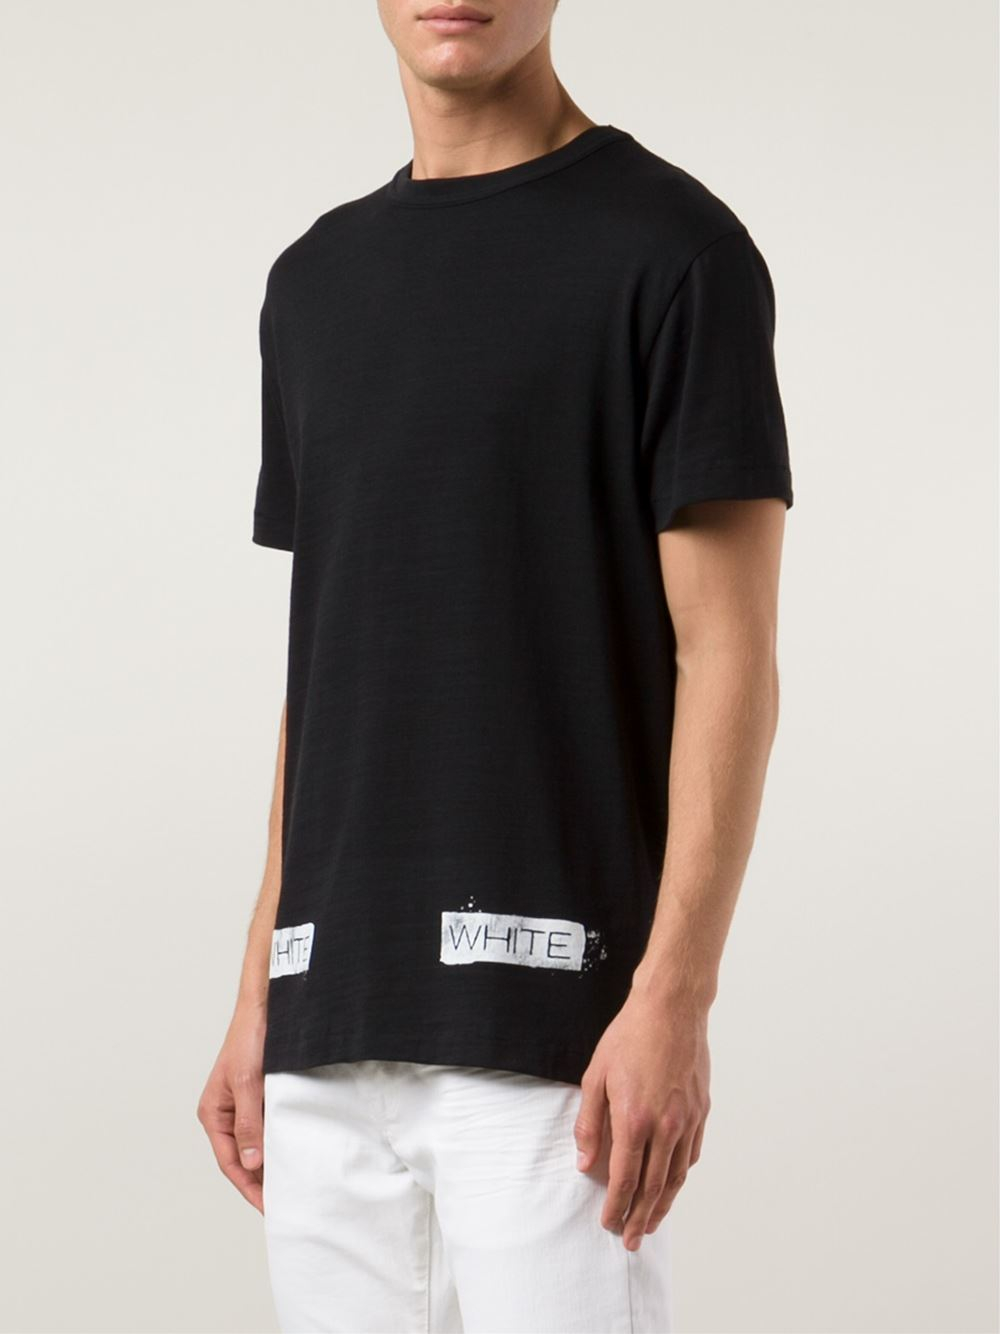 Off-white c/o virgil abloh Logo-Print Cotton T-Shirt in Black for ...